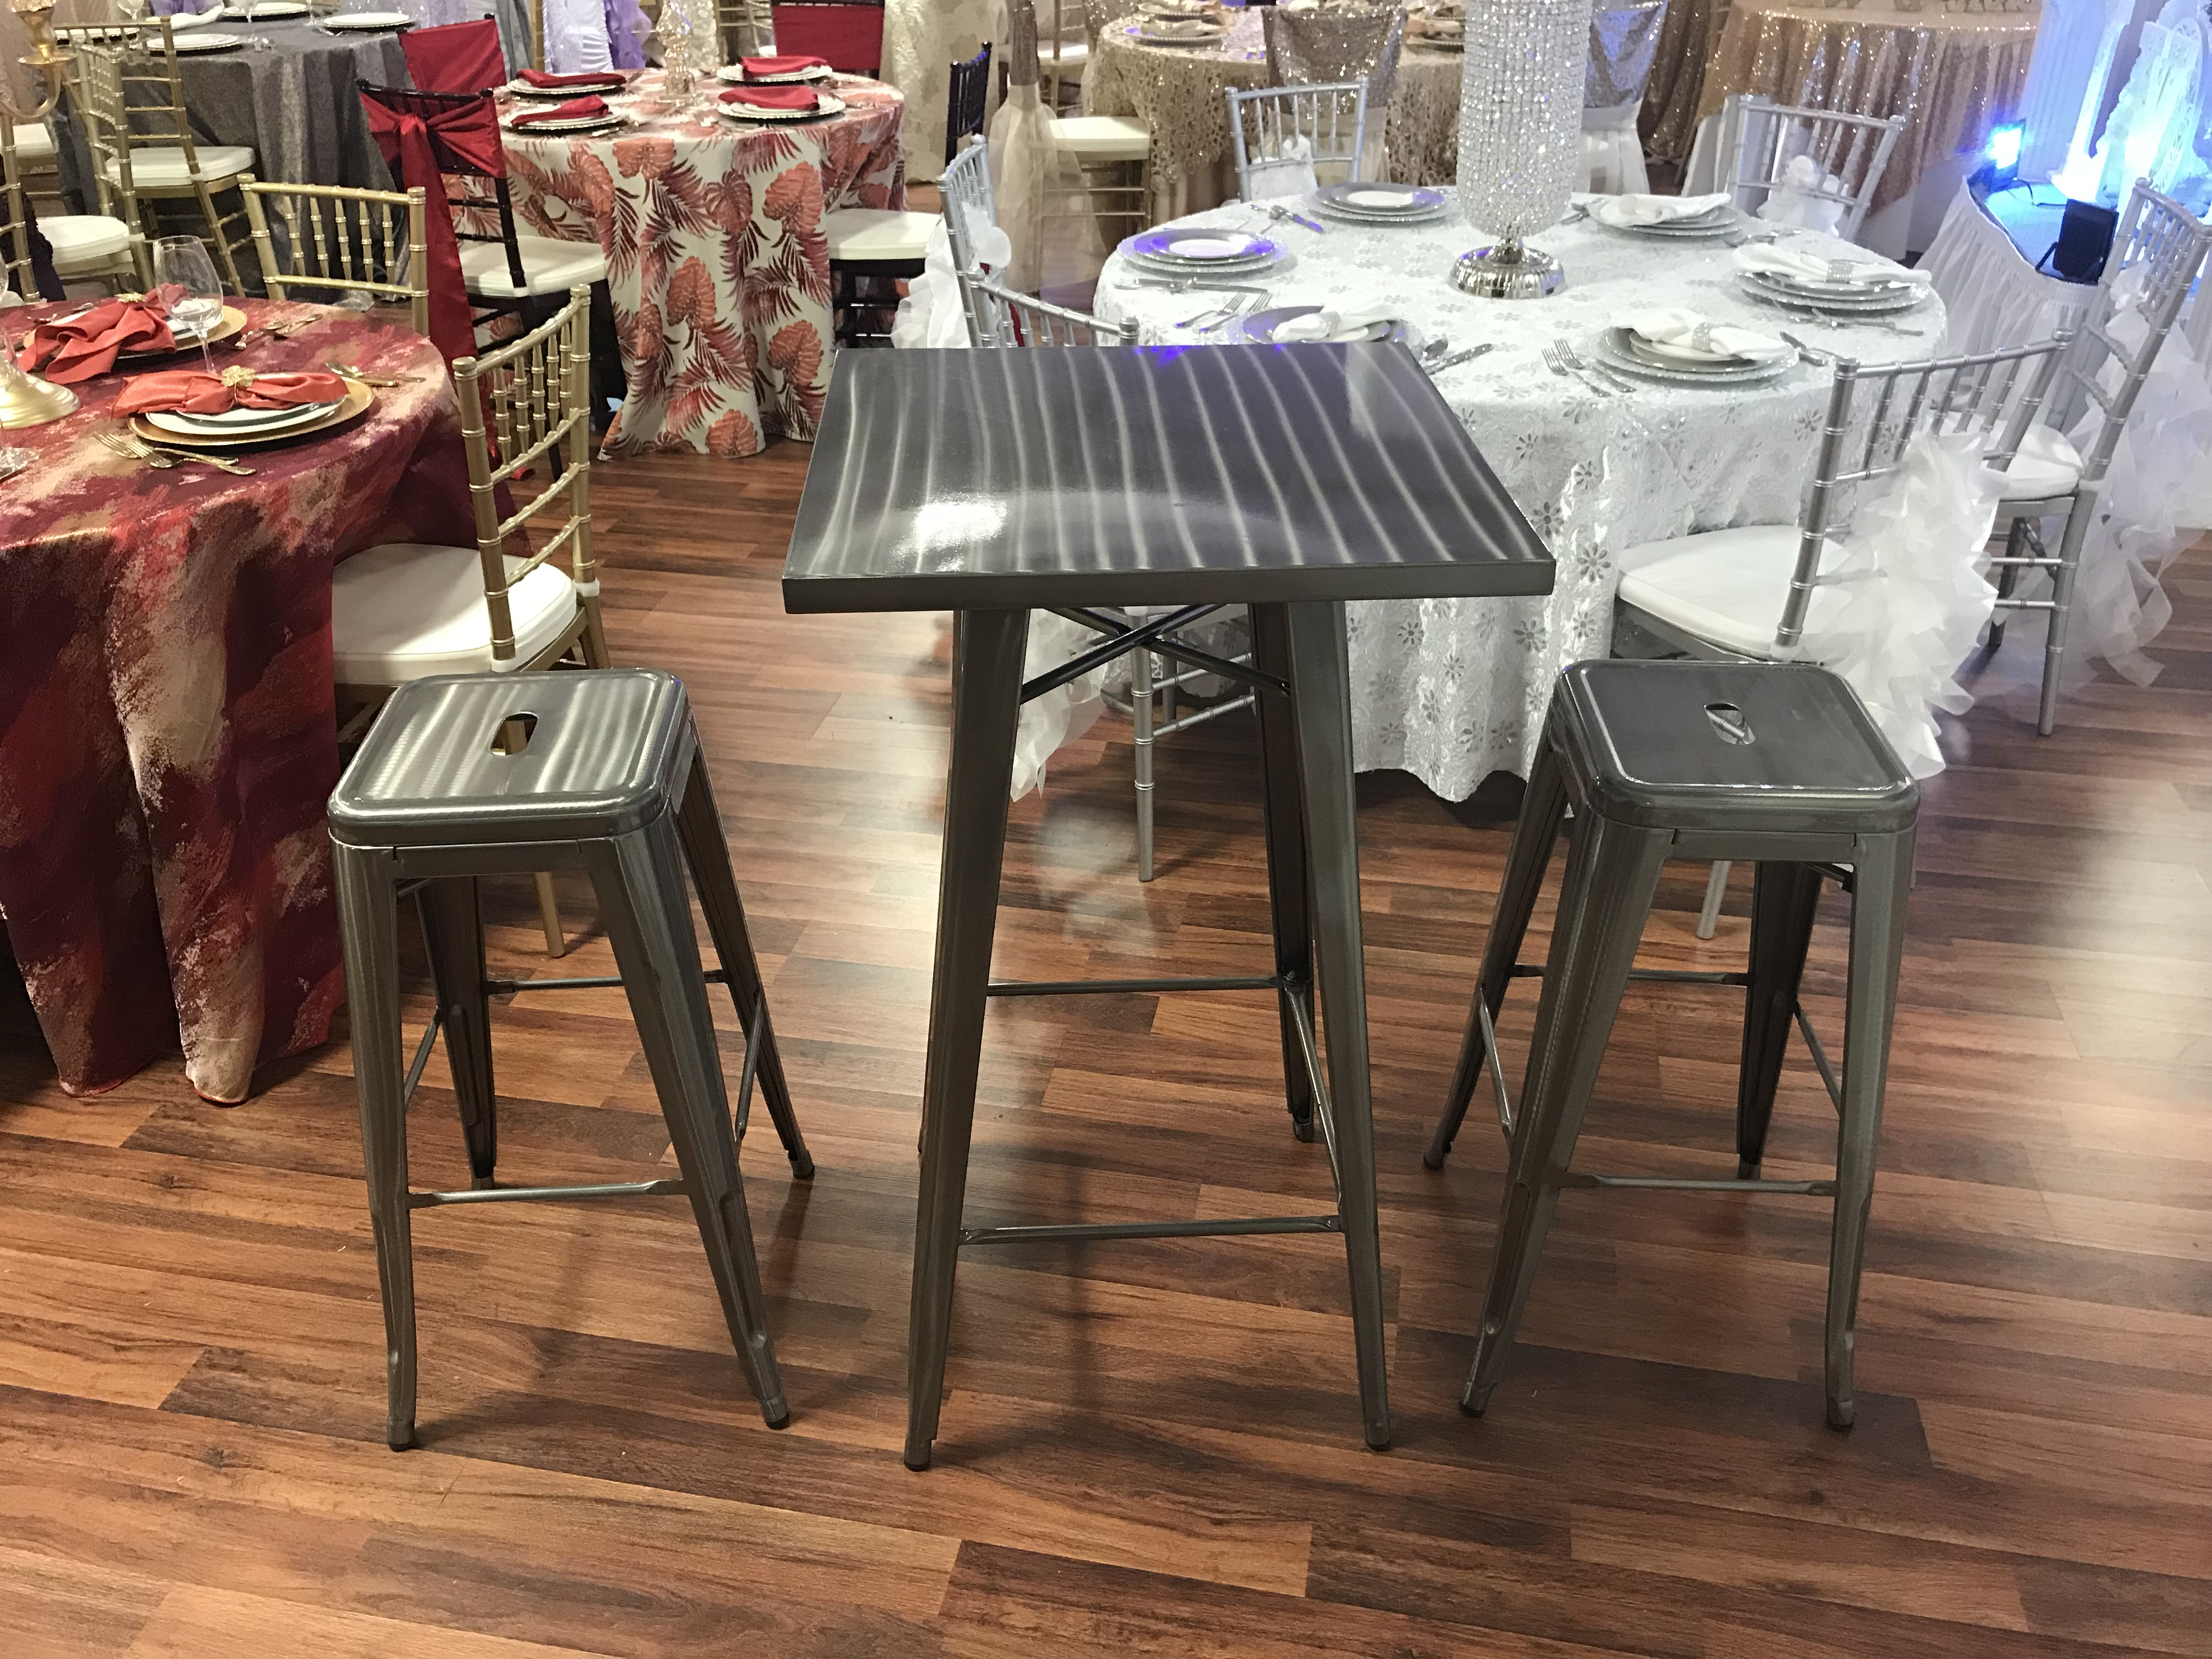 table chair rentals 2 target bean bag pillowfort silver bistro with stools party corporate events rental cincinnati dayton oh